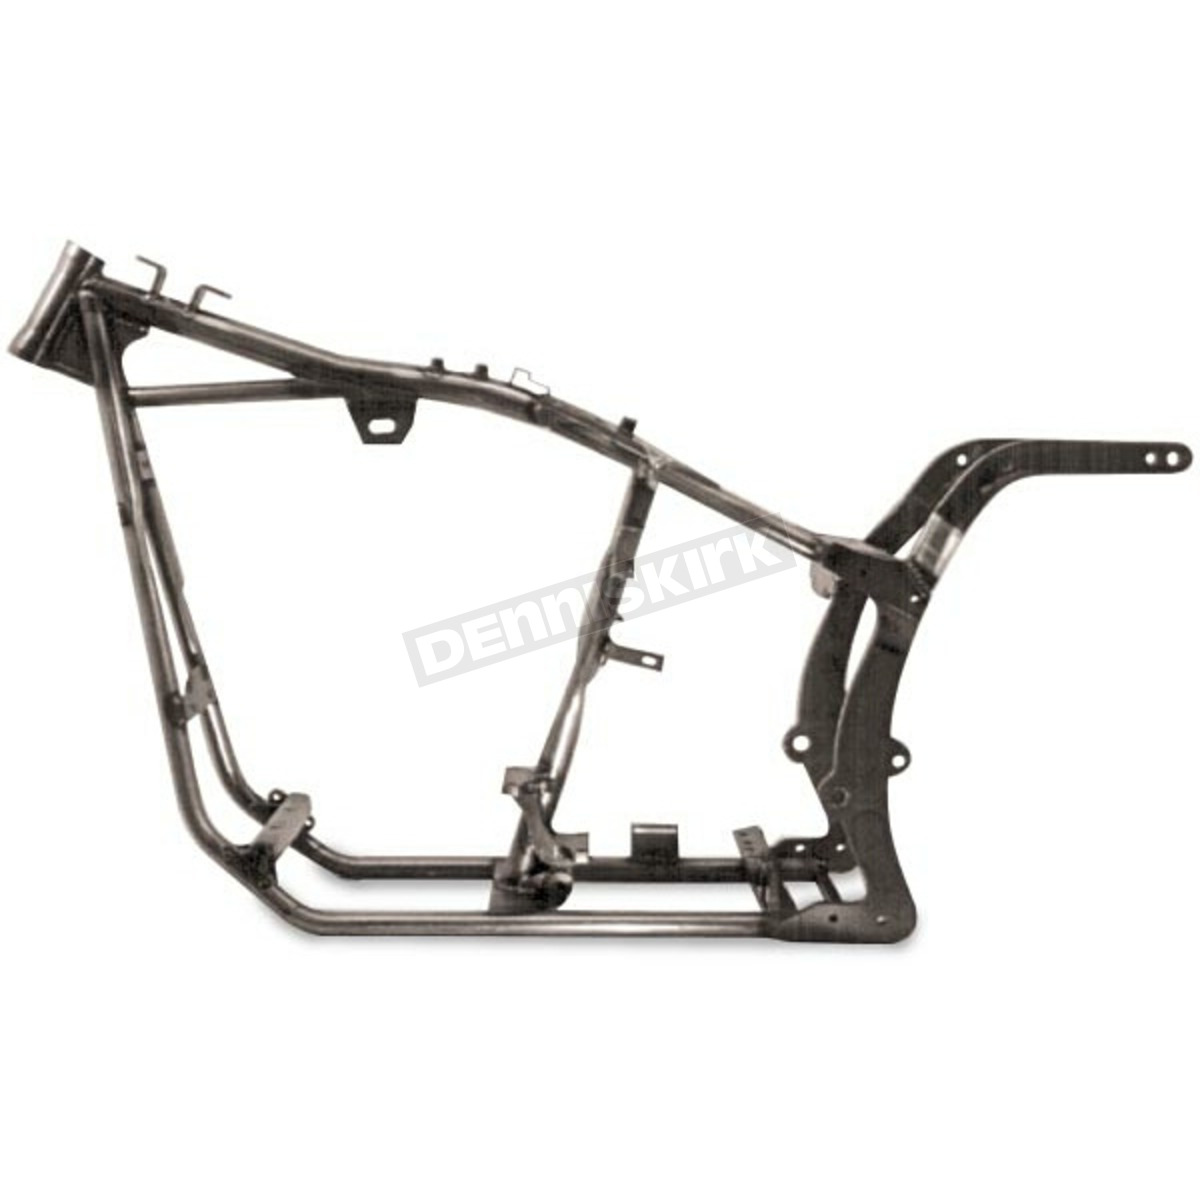 Hardbody OE-Style Replacement Frame For Softail - 20015 Harley ...